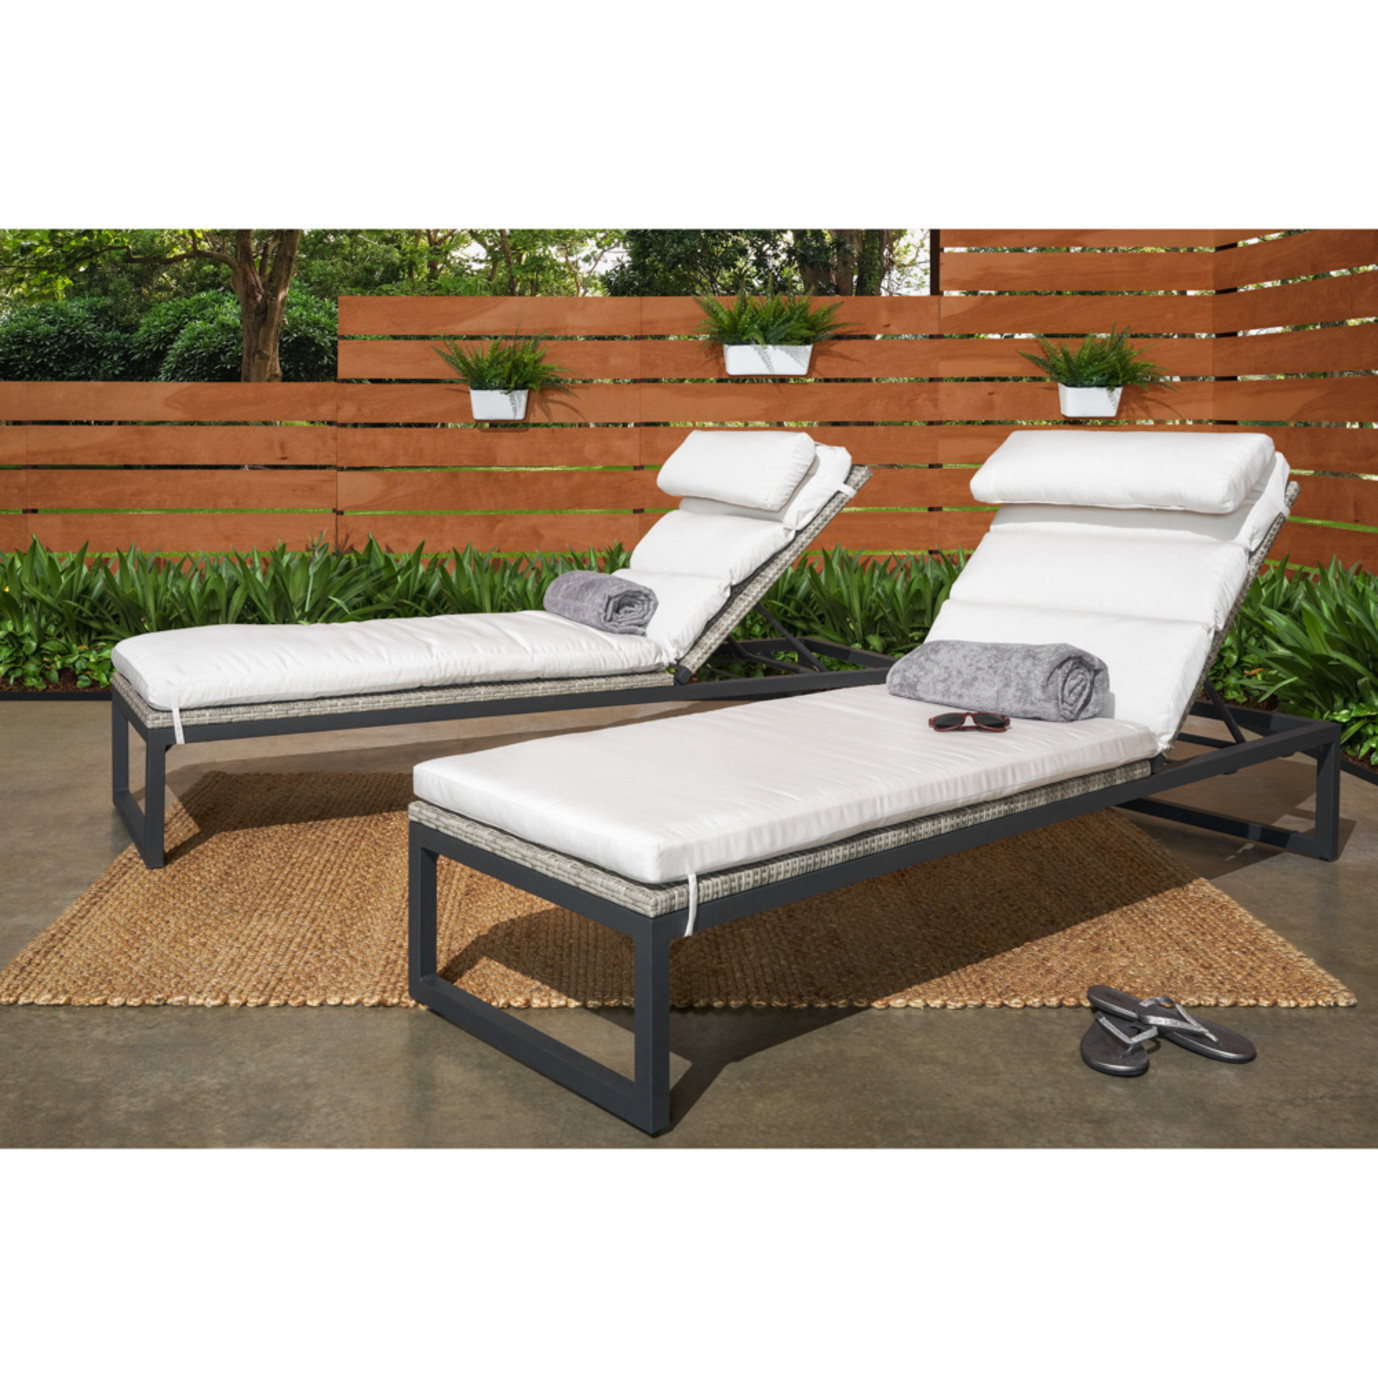 Milo™ Grey Chaise Lounges - Moroccan Cream